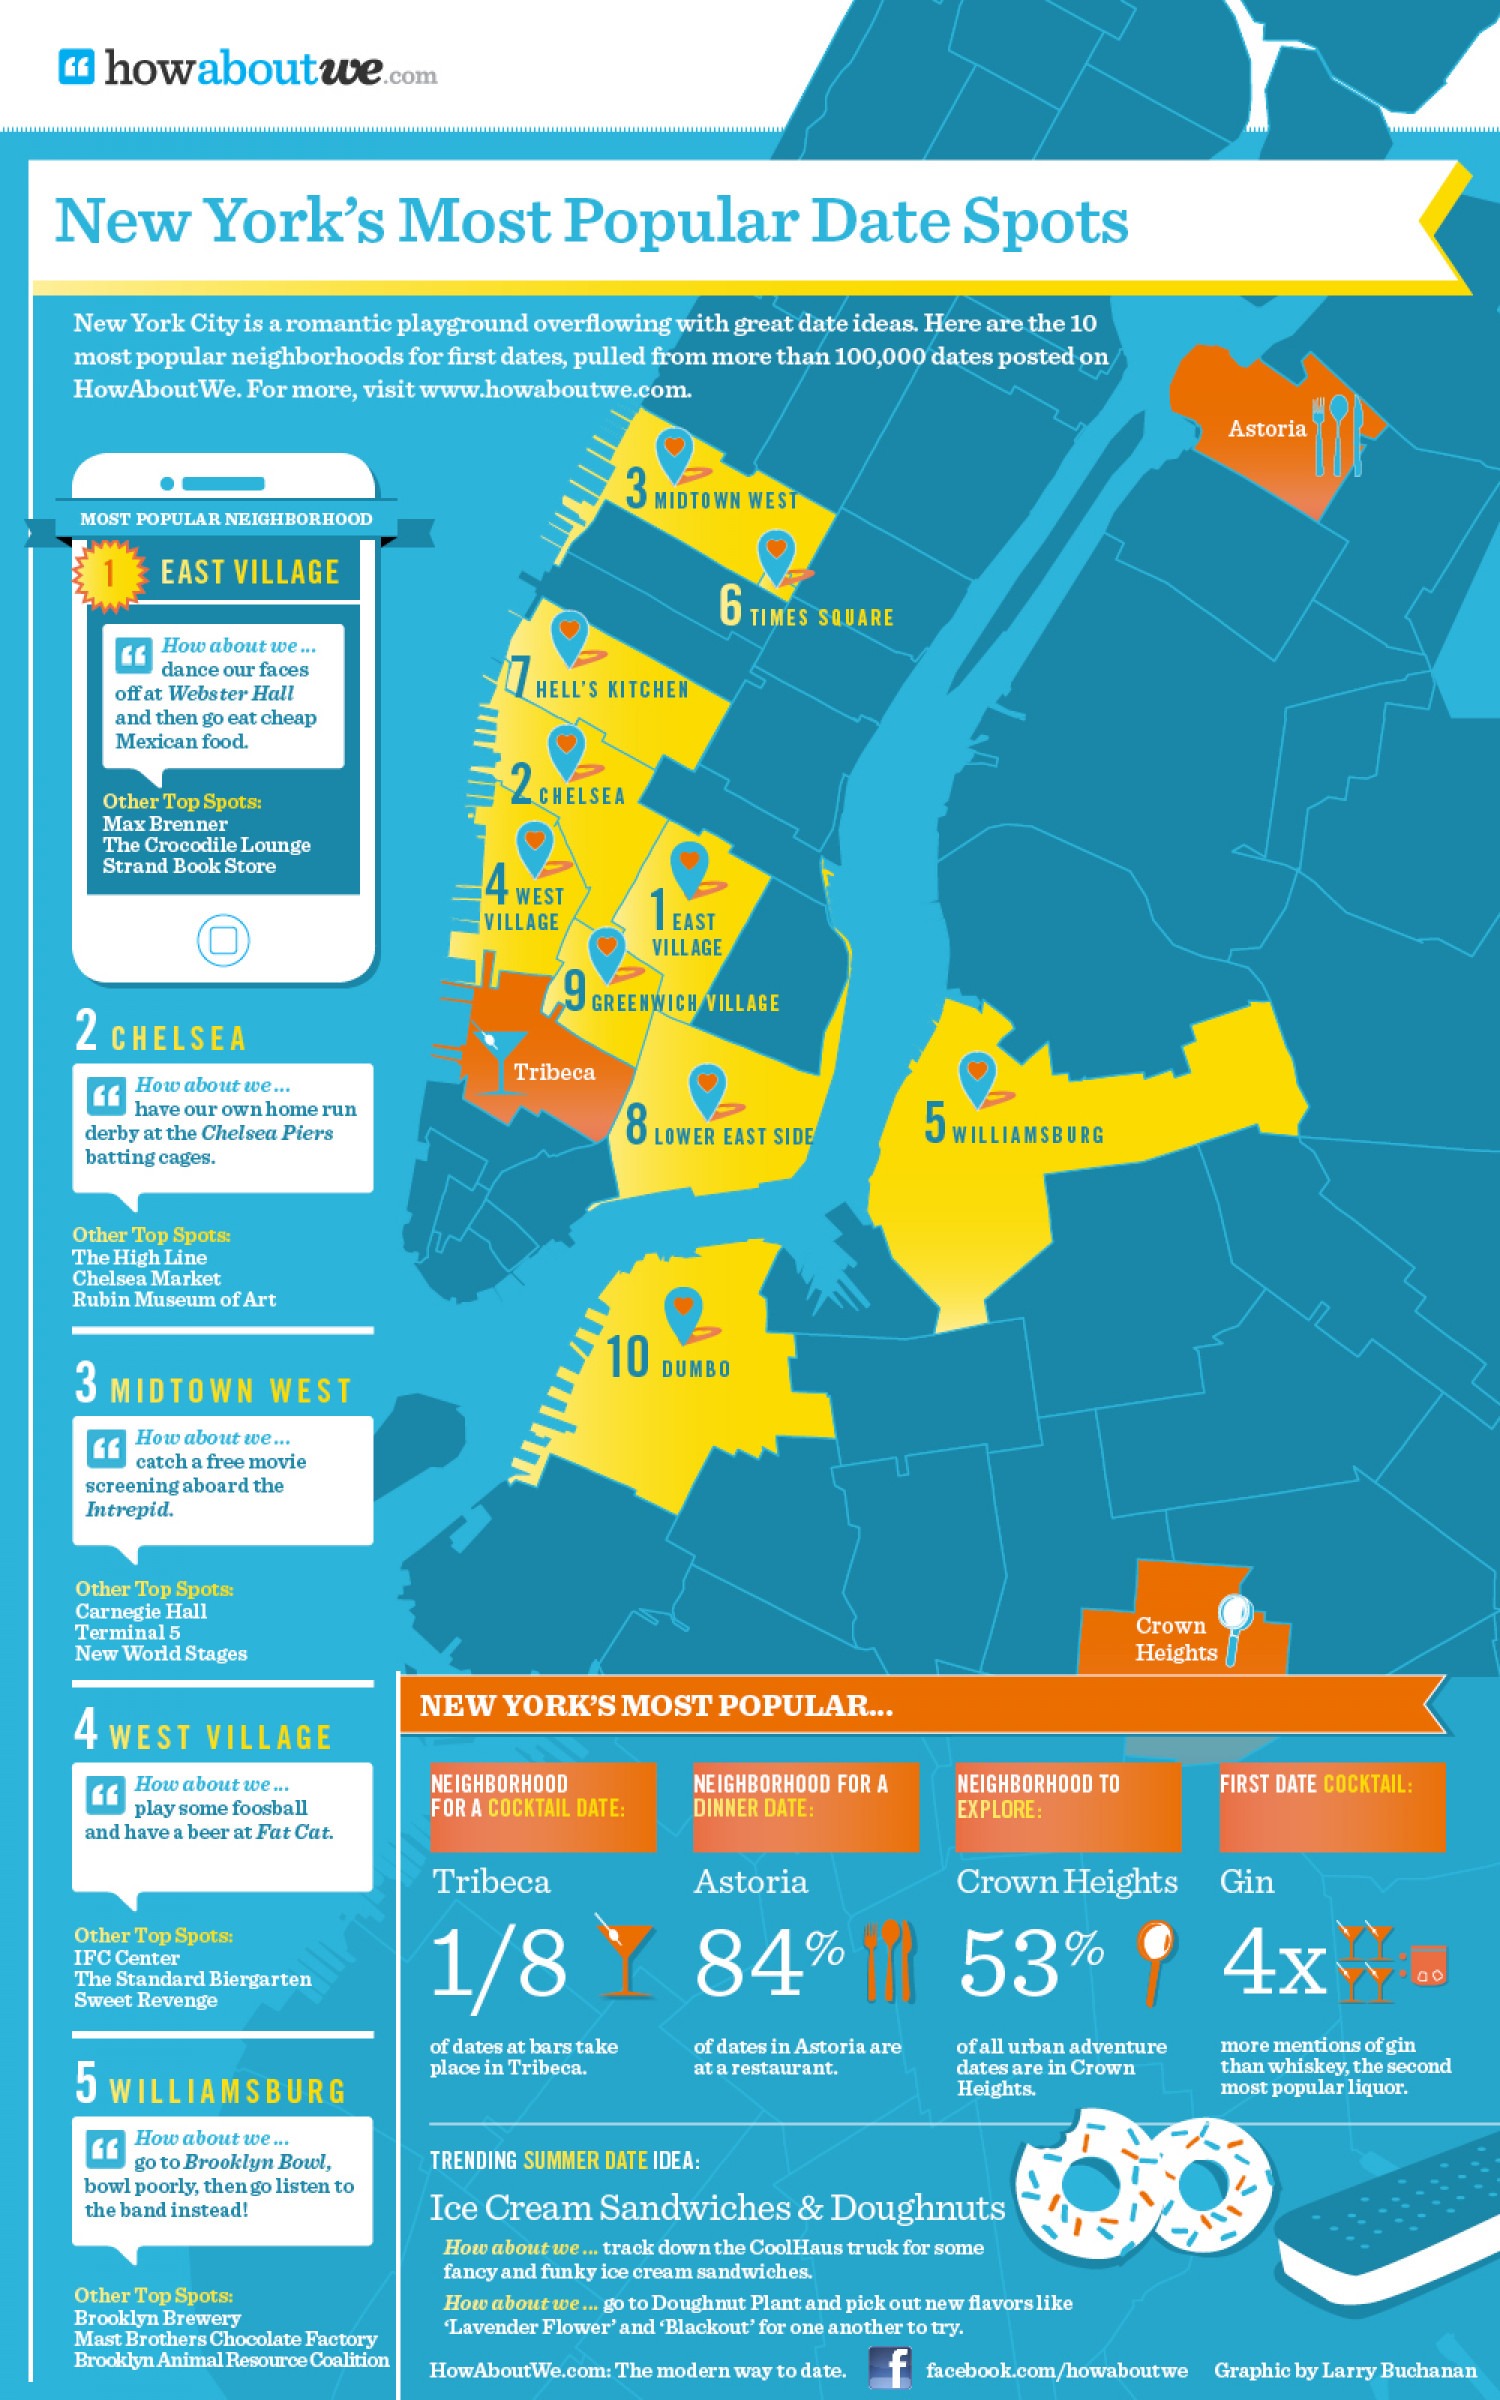 New York's Most Popular Date Spots Infographic